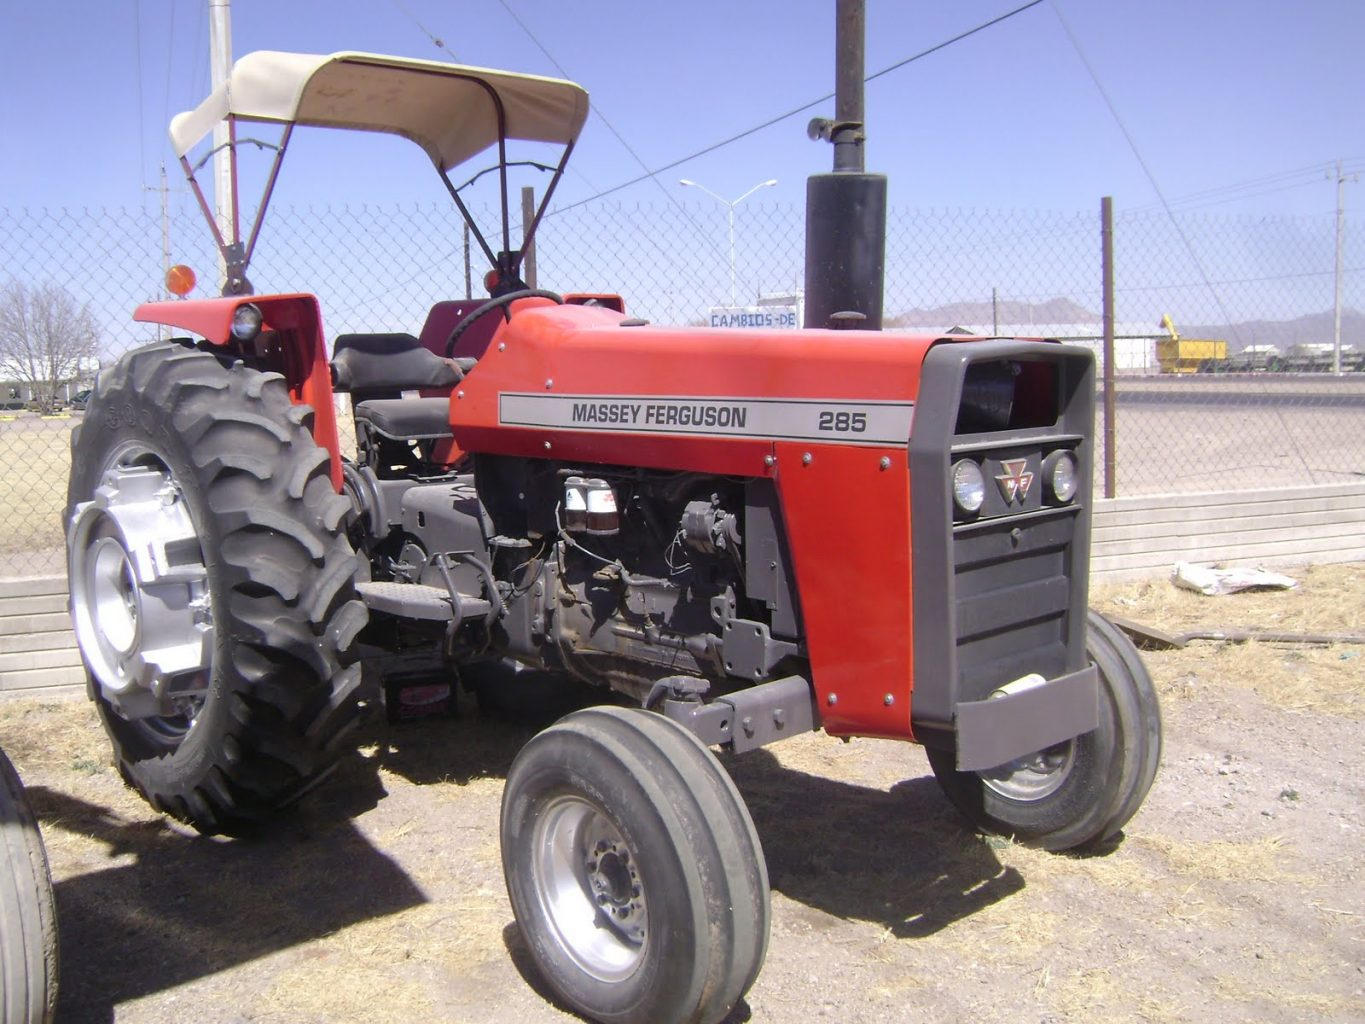 llll➤ Massey Ferguson 285: Price Parts information Specs And Review